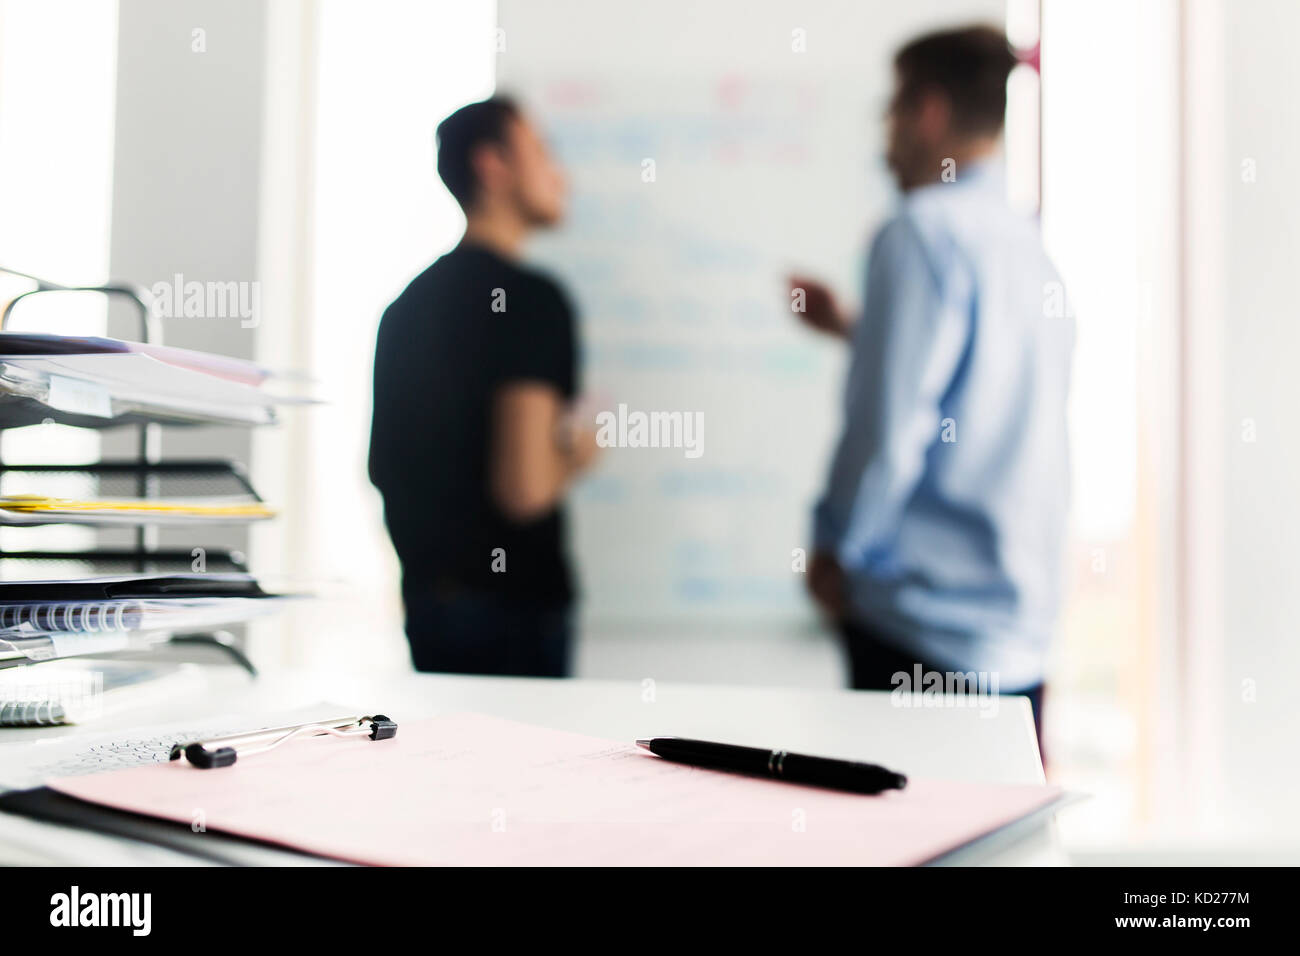 Clipboard with pen, colleagues in background - Stock Image